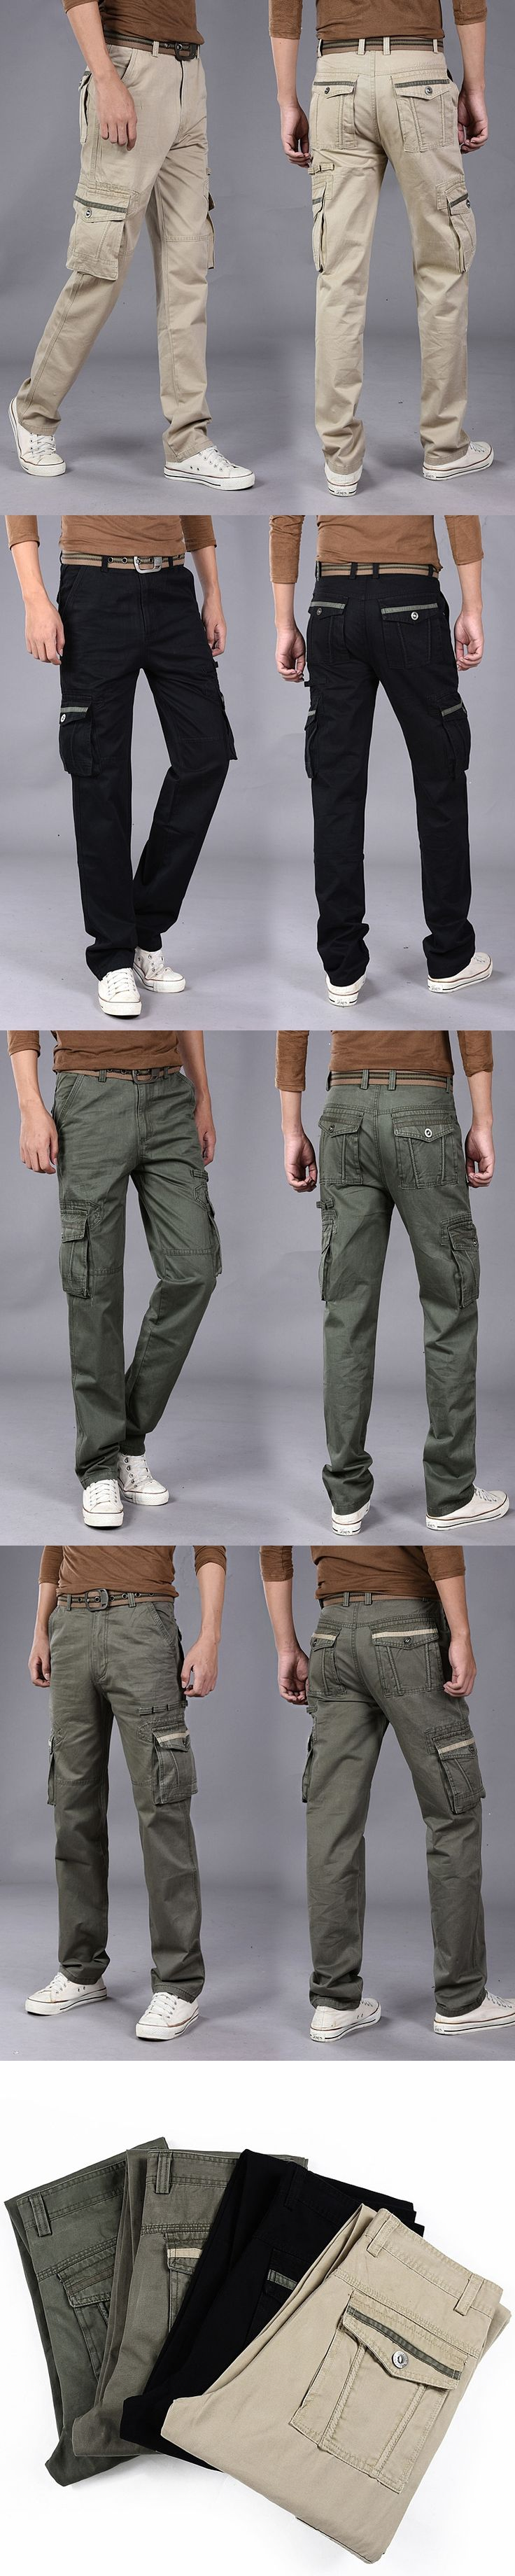 City Tactical Cargo Pants Men Combat  Army Military Pants Cotton Pockets Stretch Paintball Militar Casual Trousers